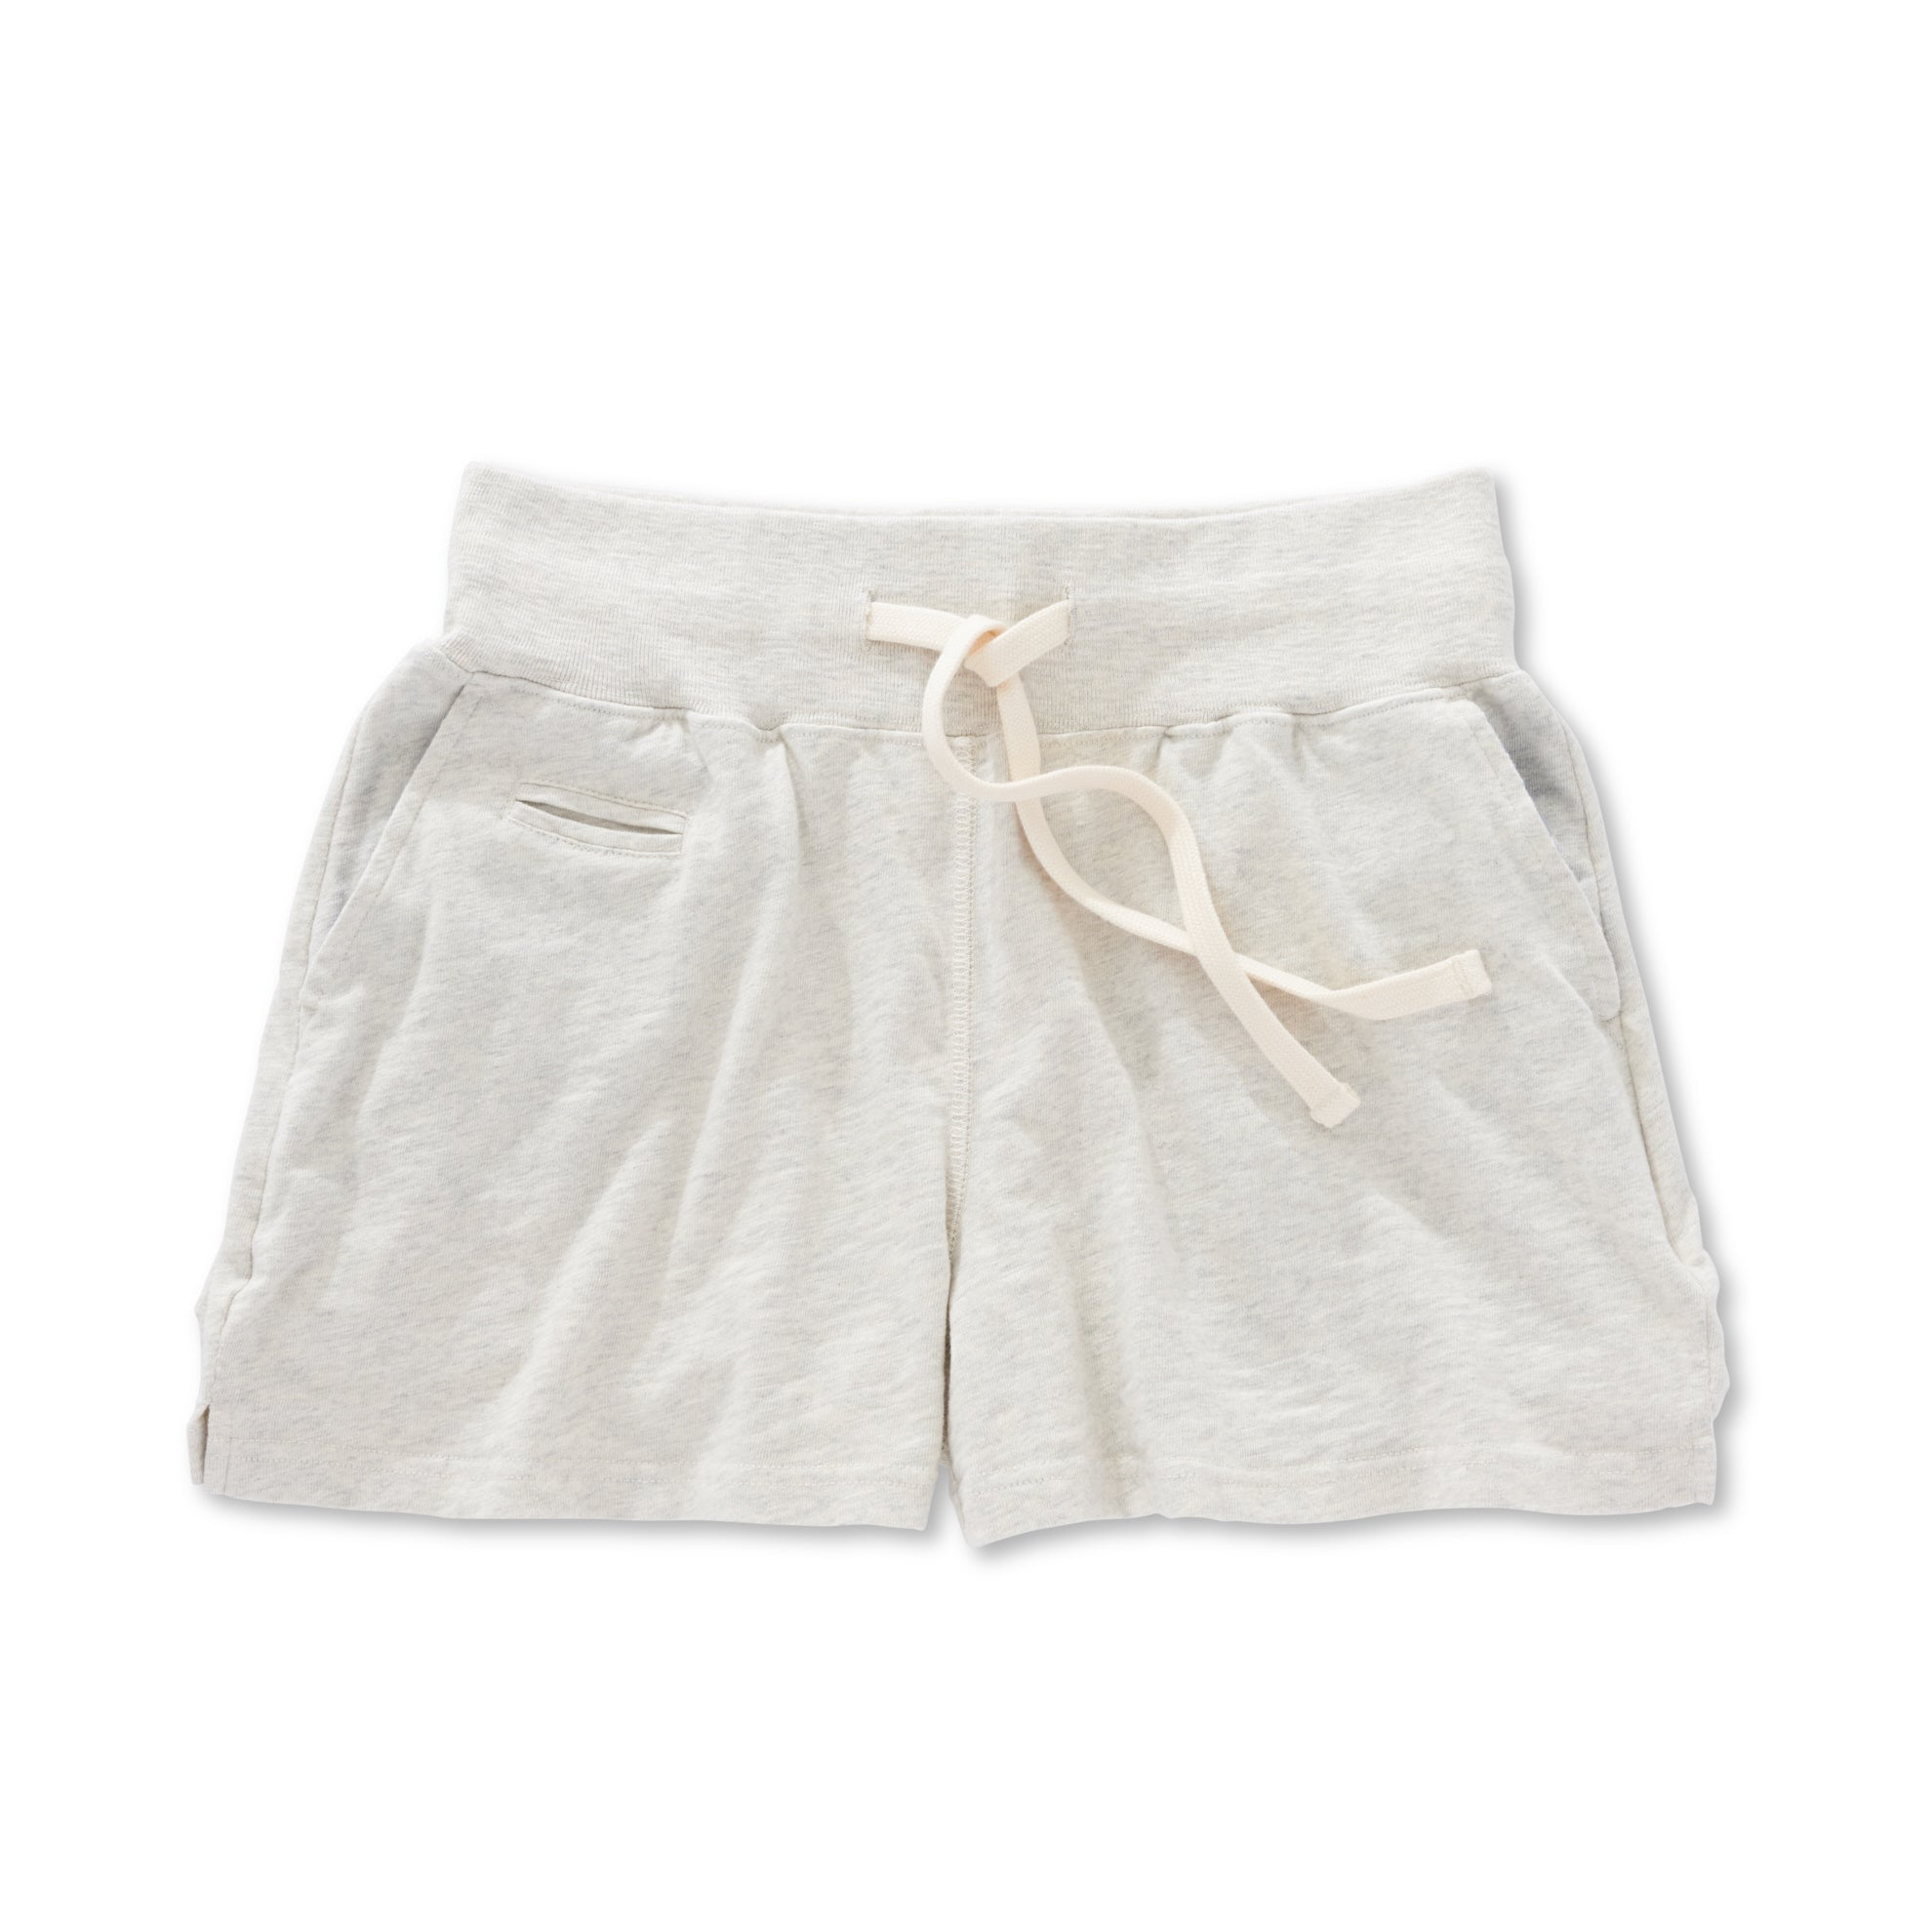 Reliance Garments Crew Shorts